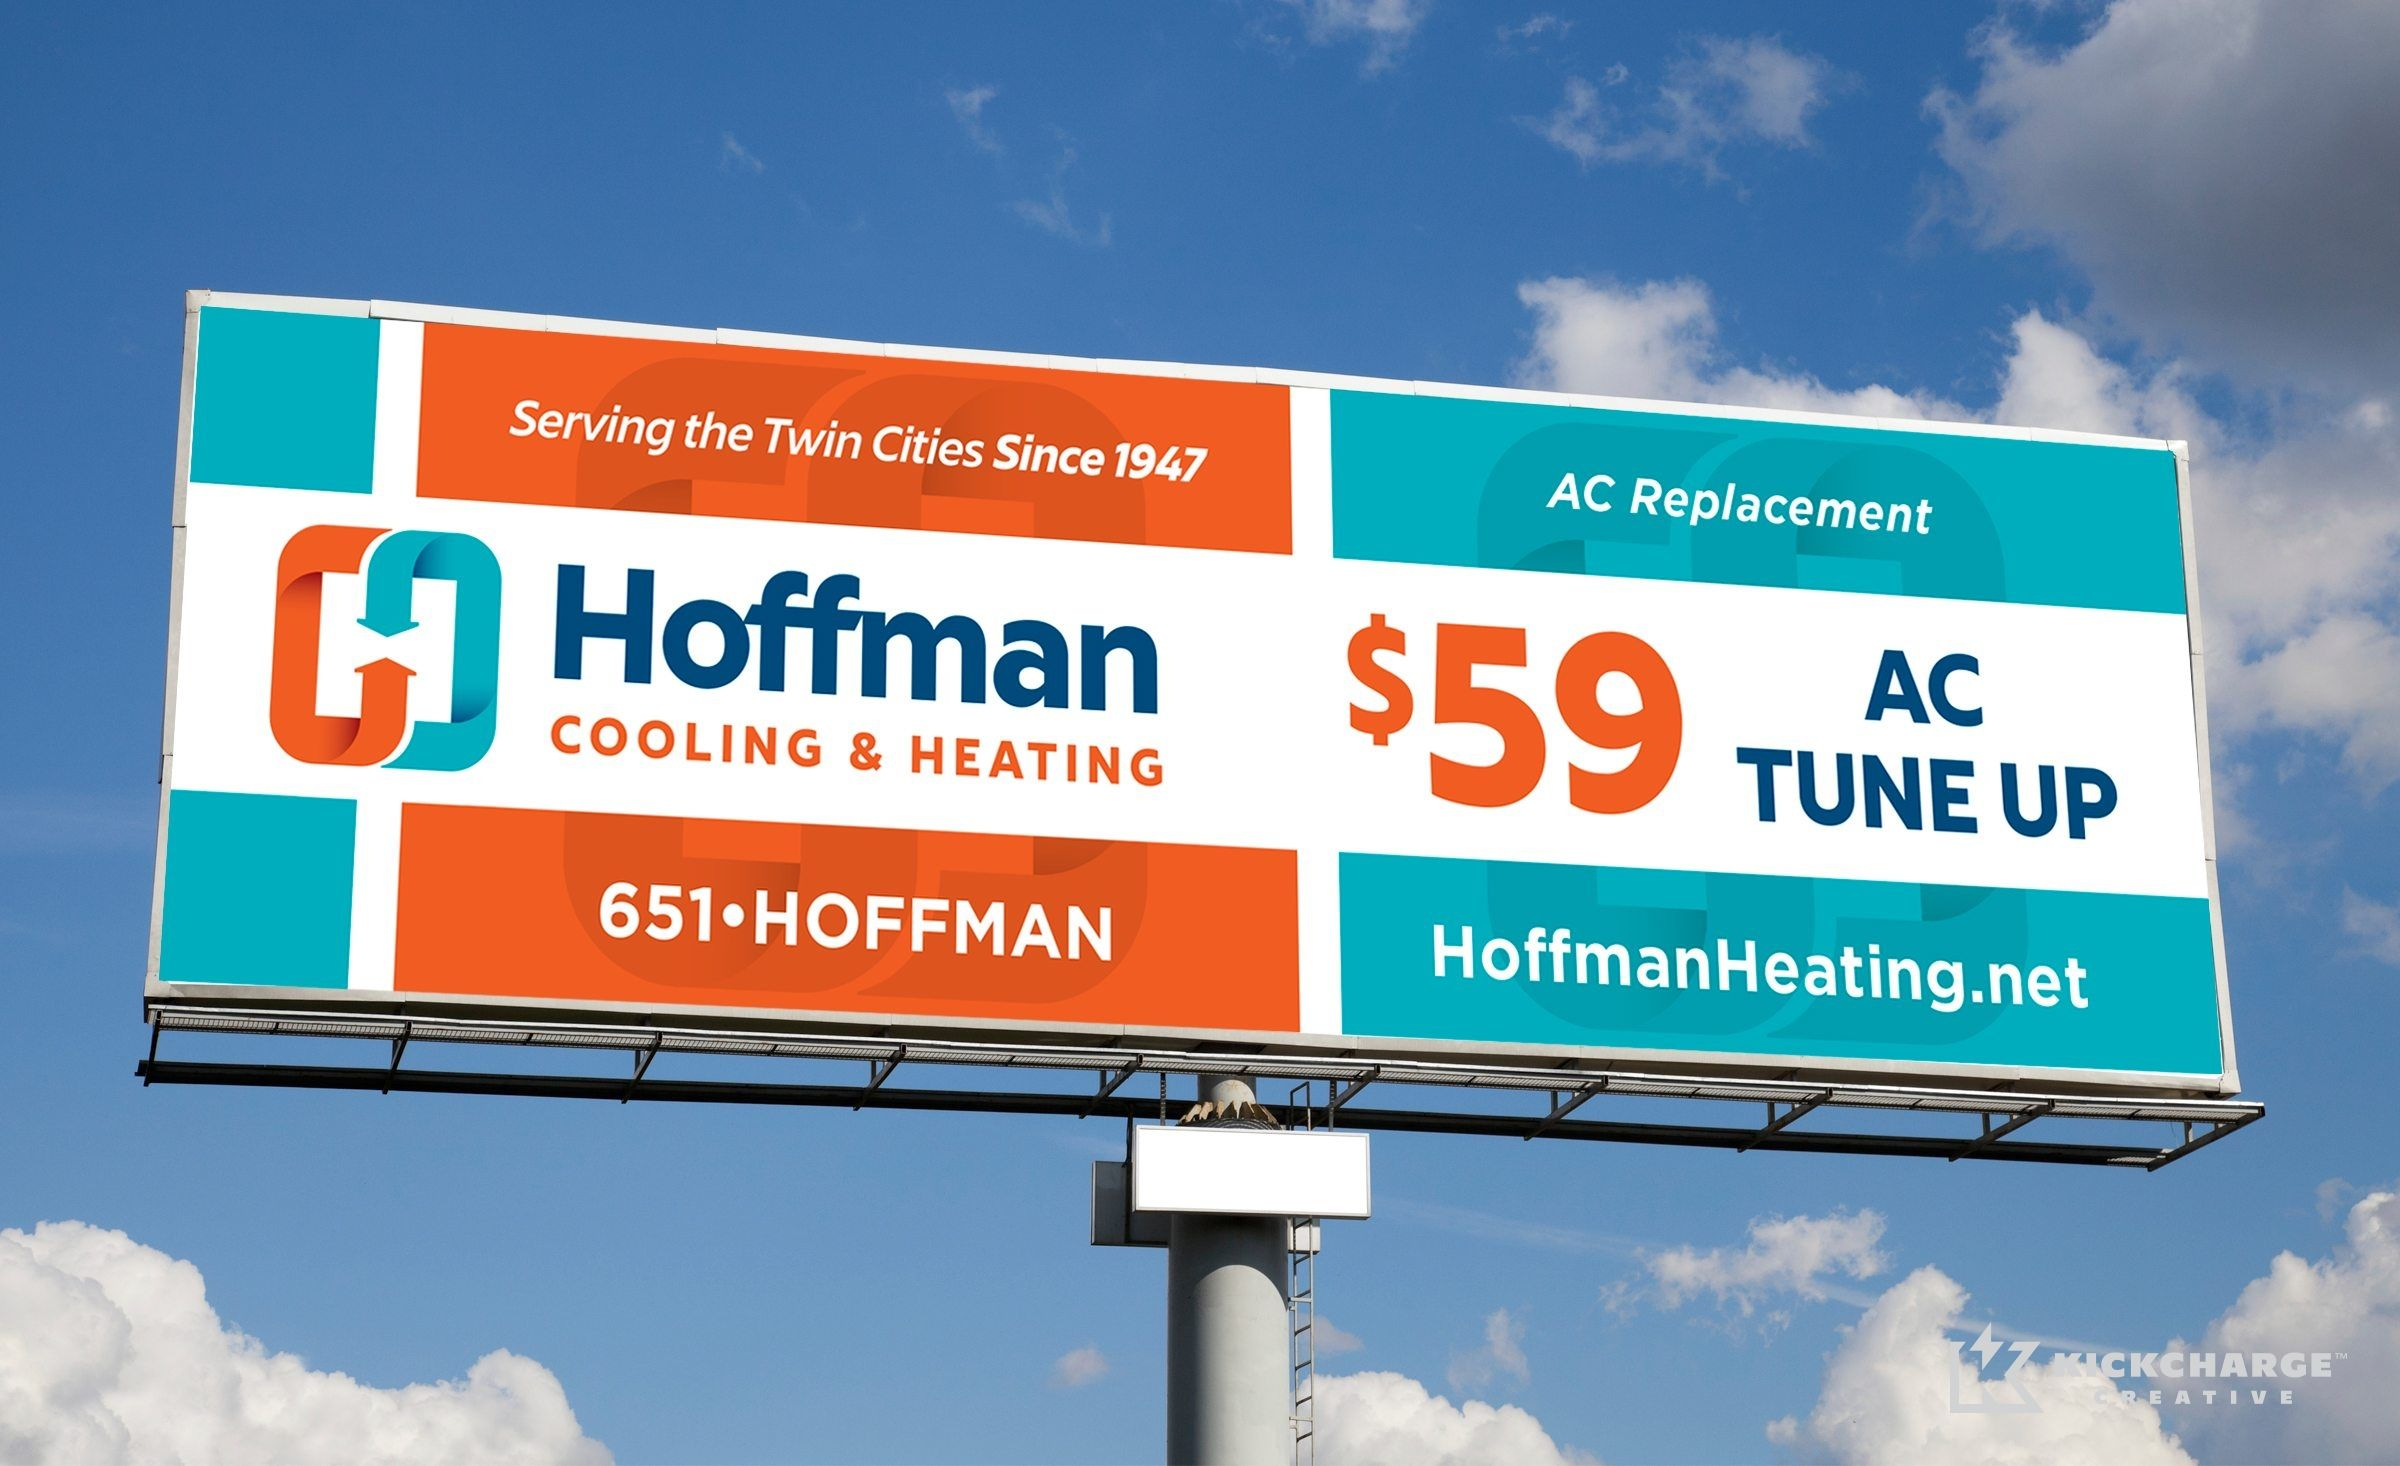 Hoffman Cooling Heating Kickcharge Creative Outdoor Advertising Ac Replacement Twin Cities